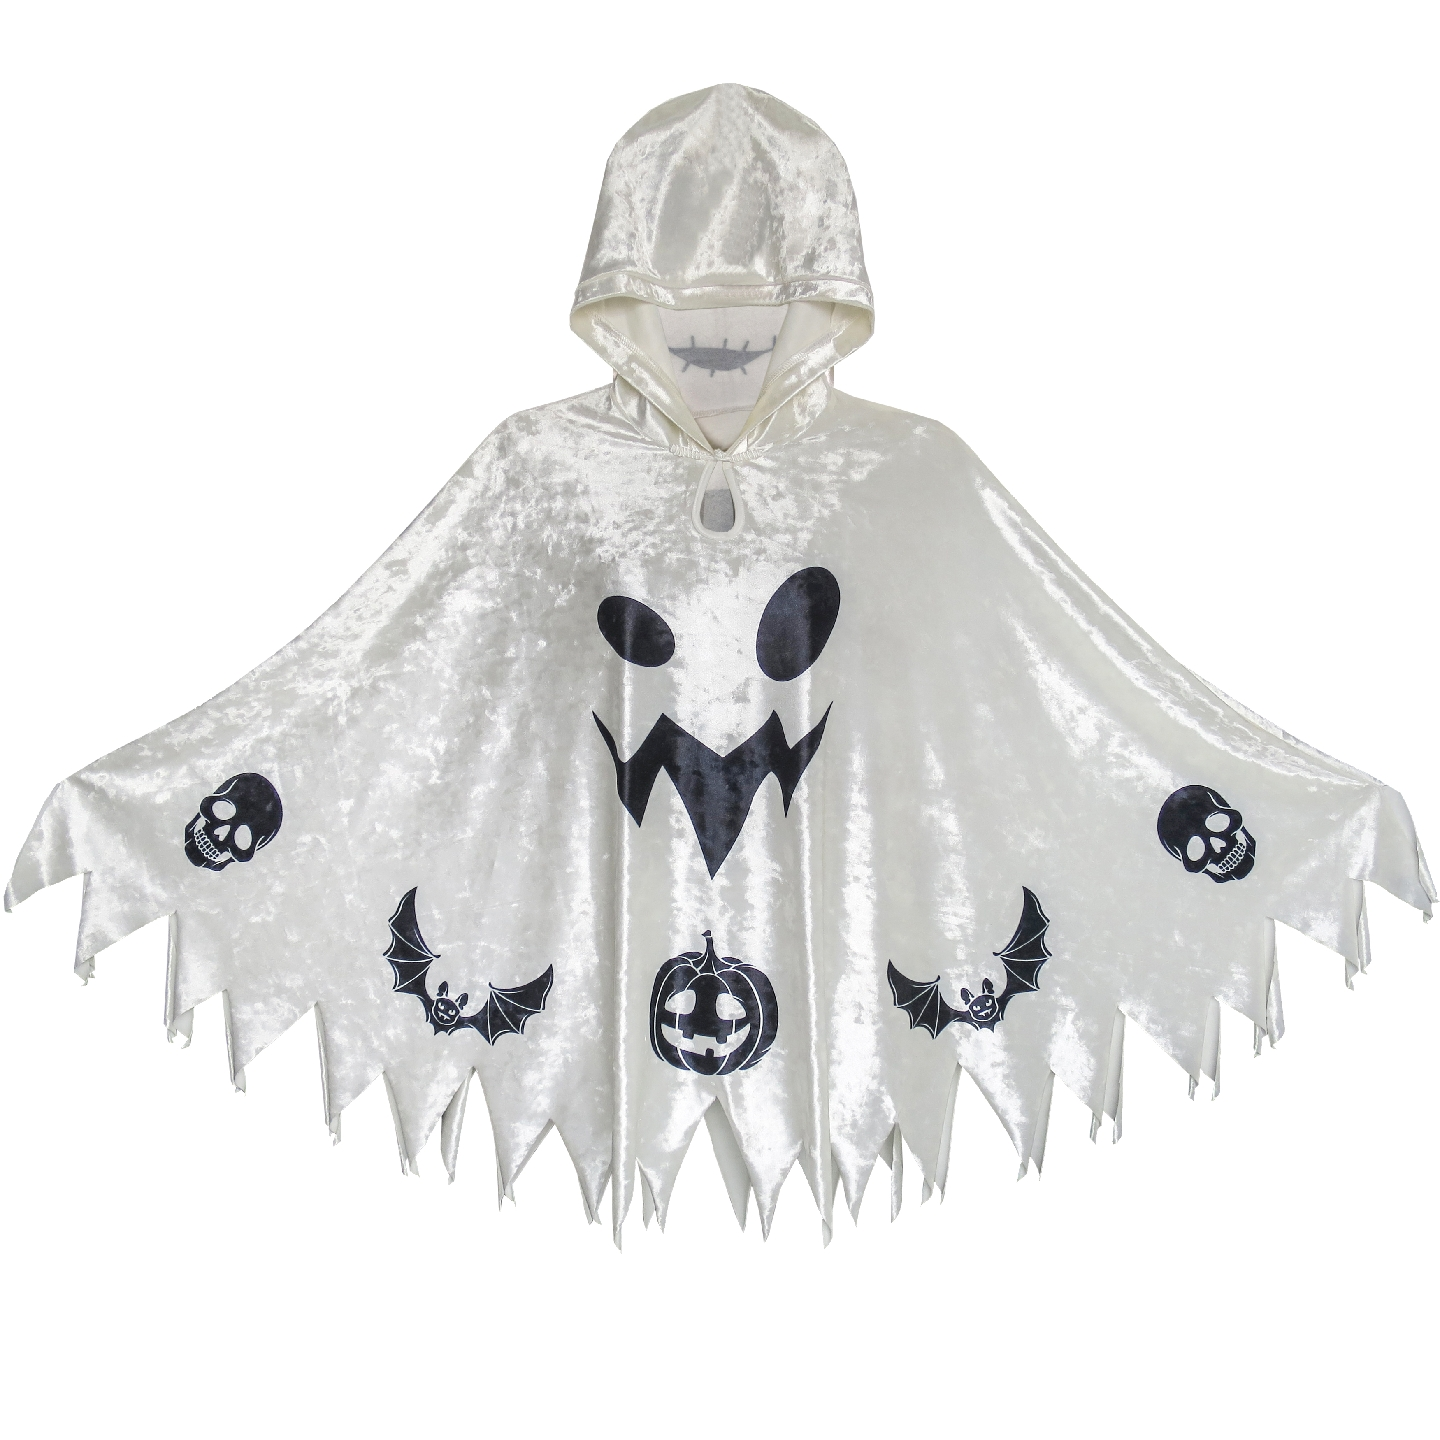 Halloween Witch Cape Velvet Hooded Cloak Costumes Wizard Cosplay 2019 Summer Princess Wedding Party Dresses Kids Clothes Pageant угловая шлифмашина defort dag 2207